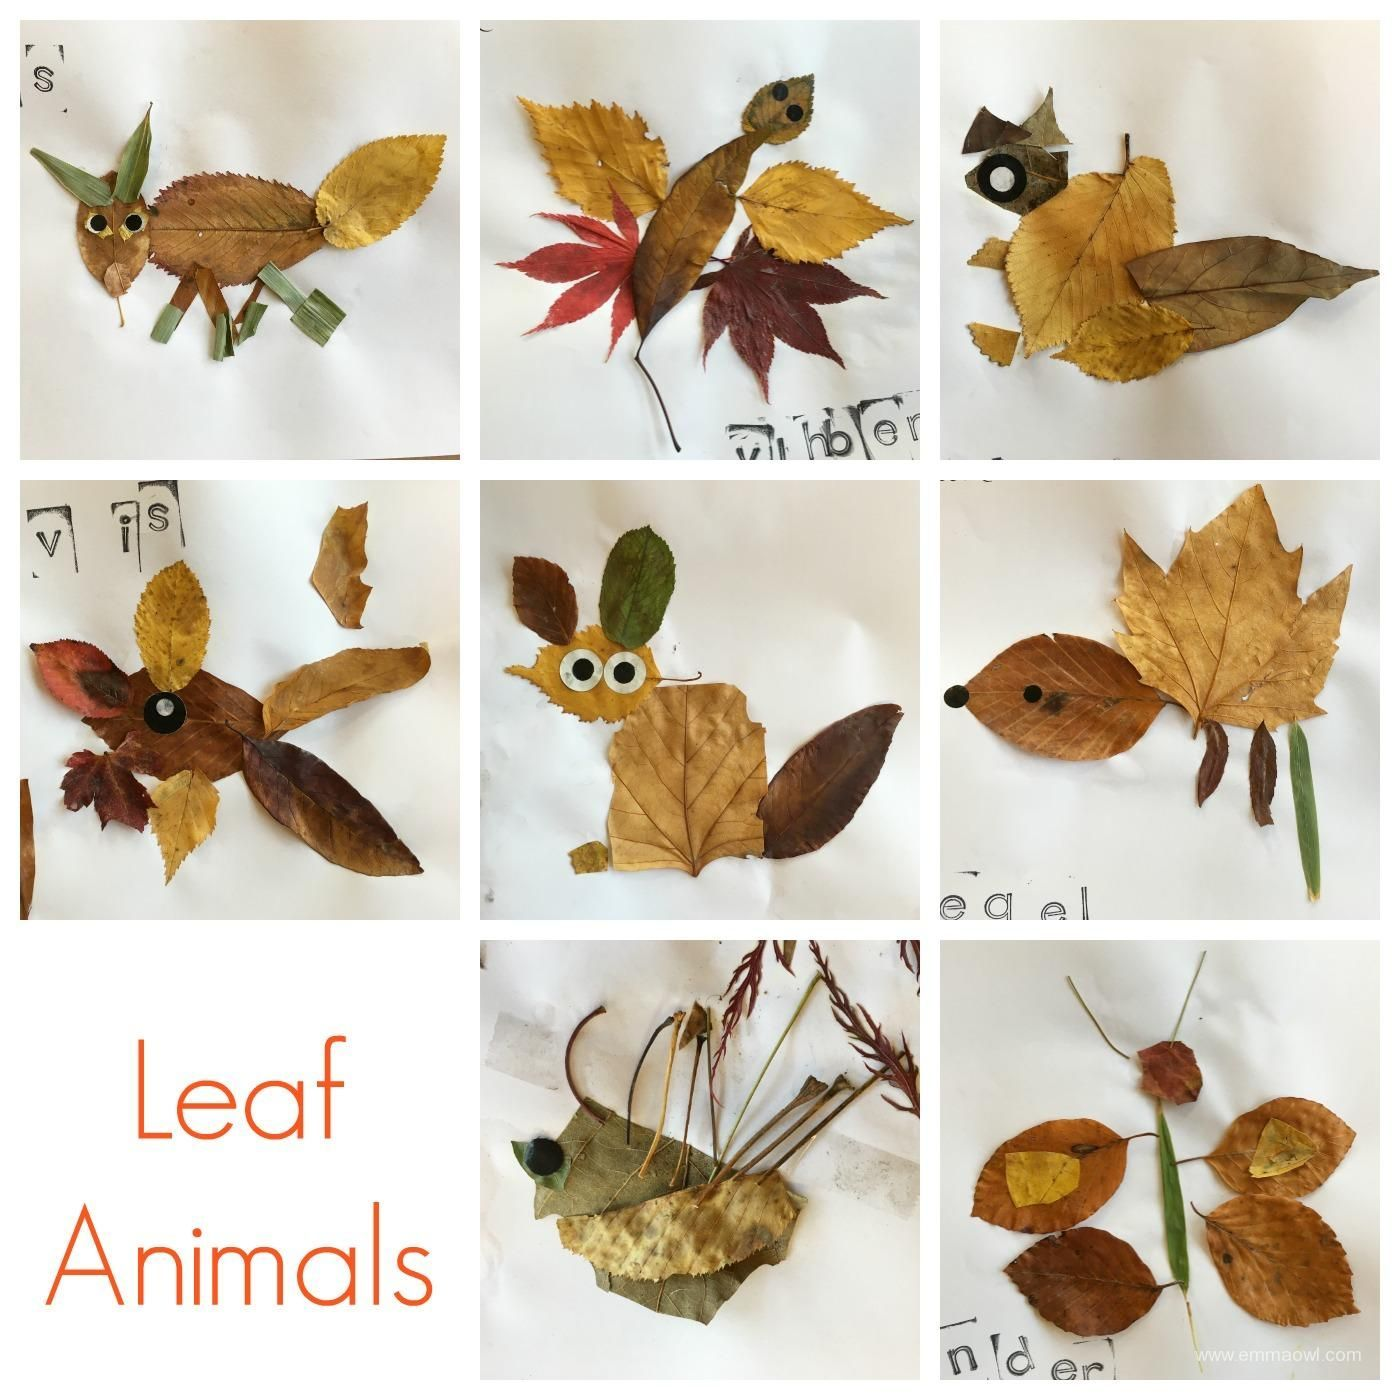 Animals!  Great autumn project for art class or a terrific fall activity to do with preschoolers at home or daycare!